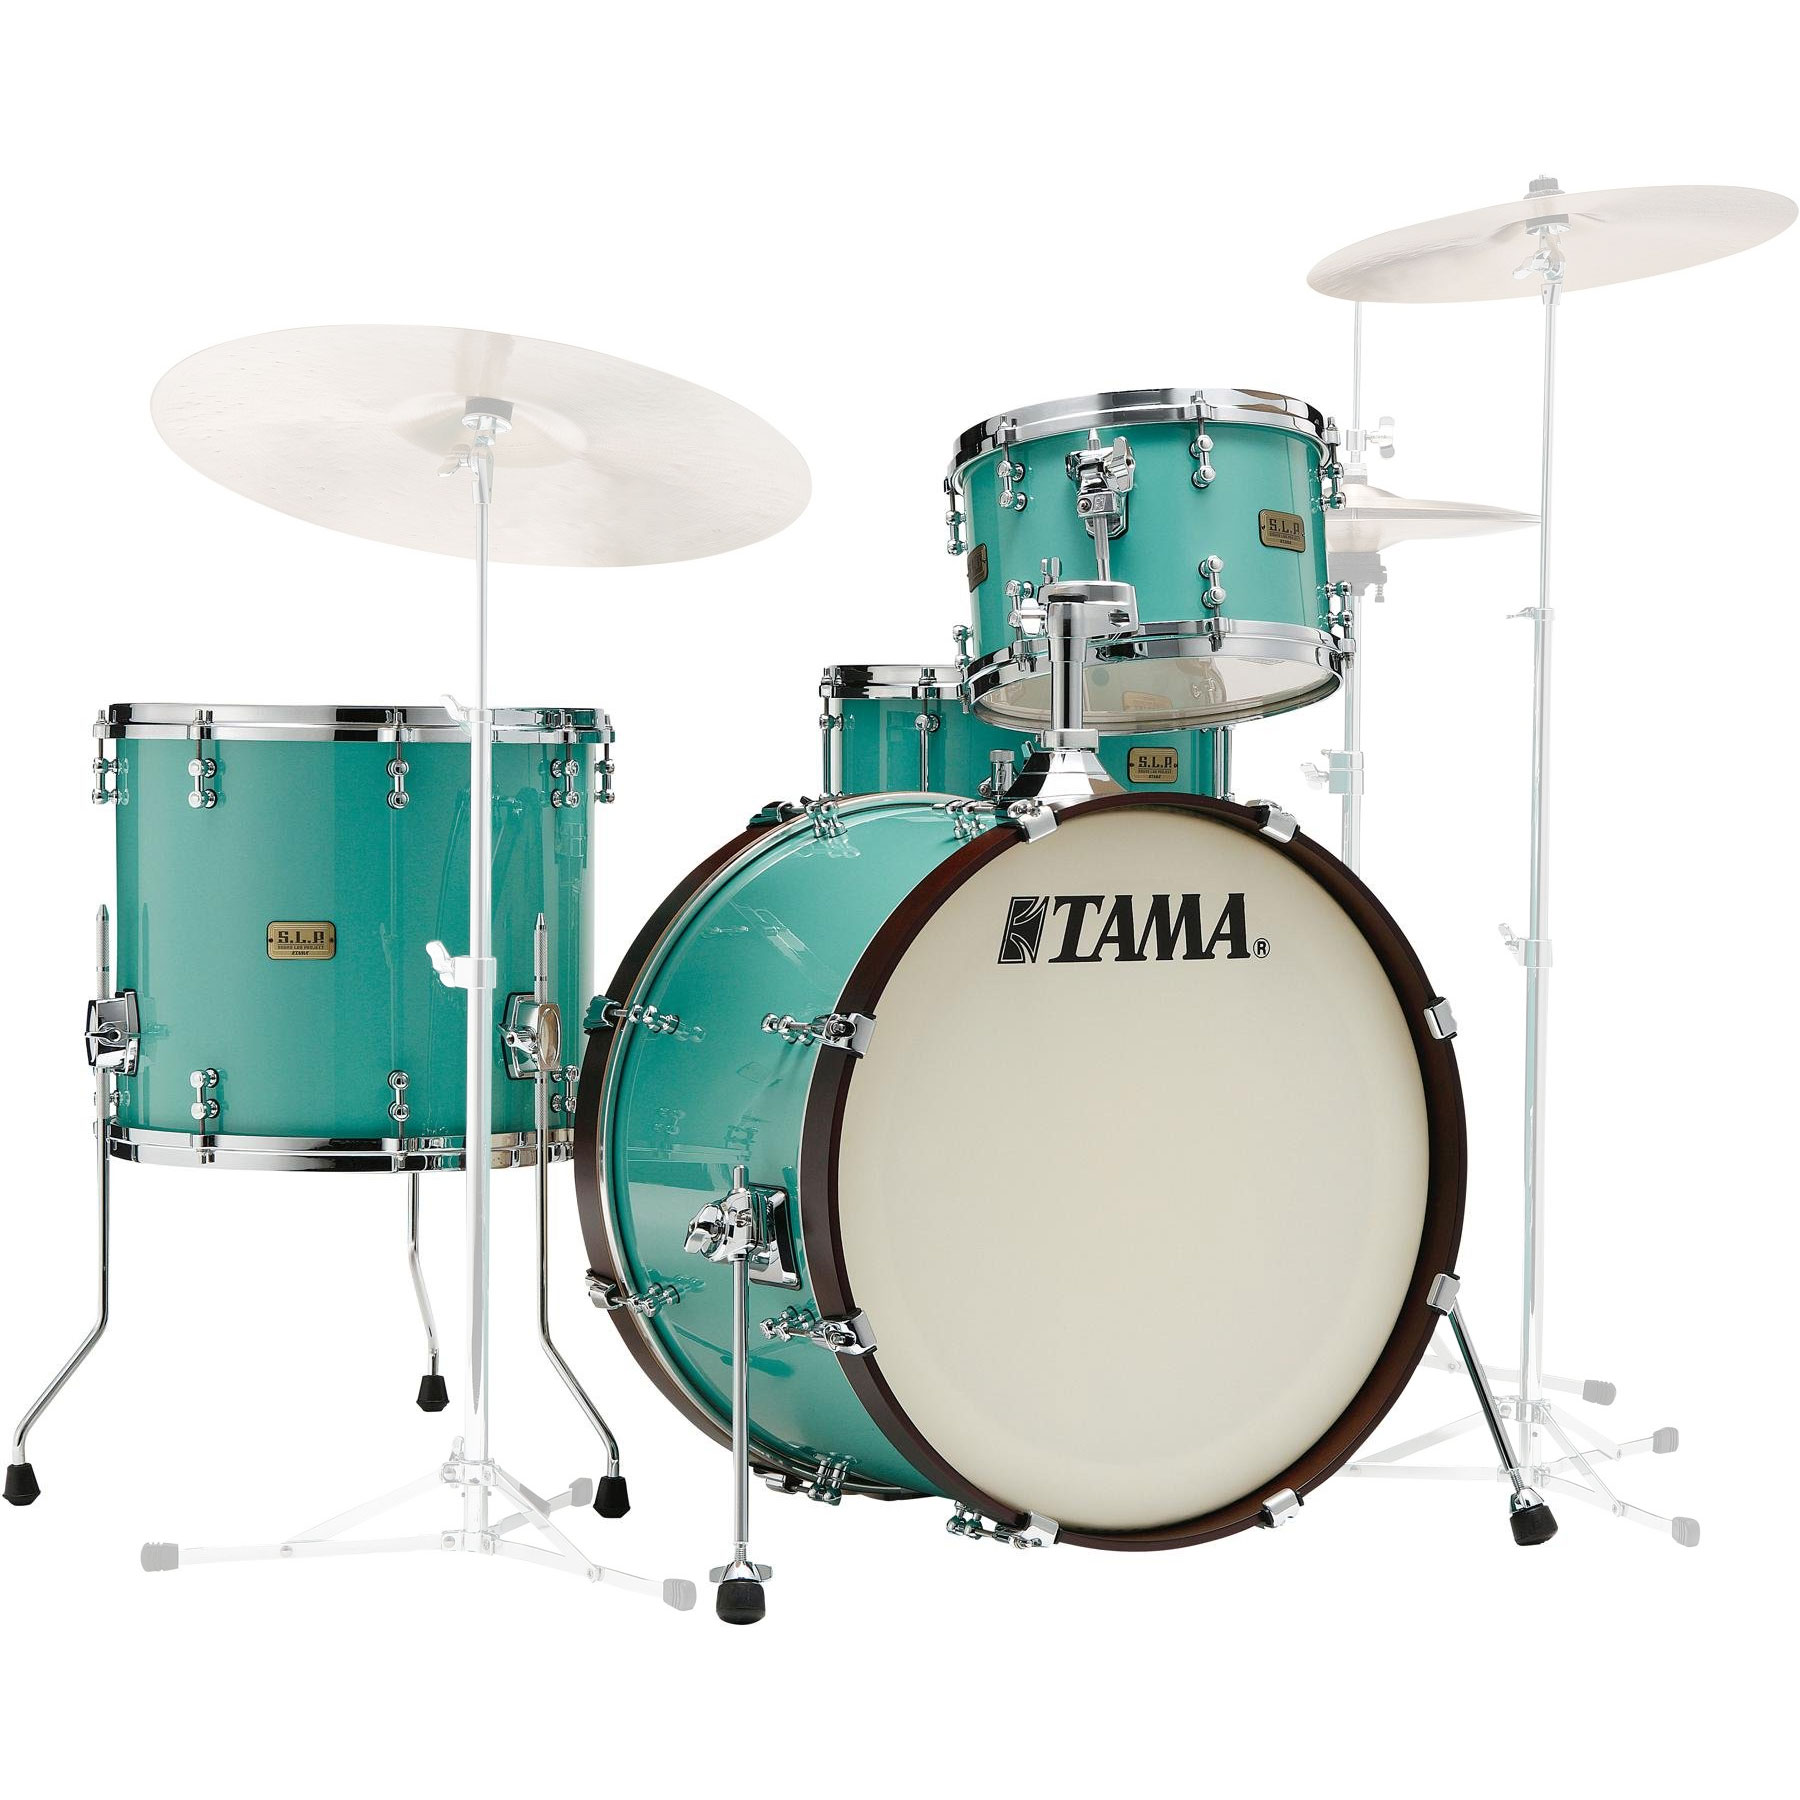 "Tama S.L.P. Fat Spruce 3-Piece Drum Set Shell Pack (20"" Bass, 12/14"" Toms) in Turquoise"